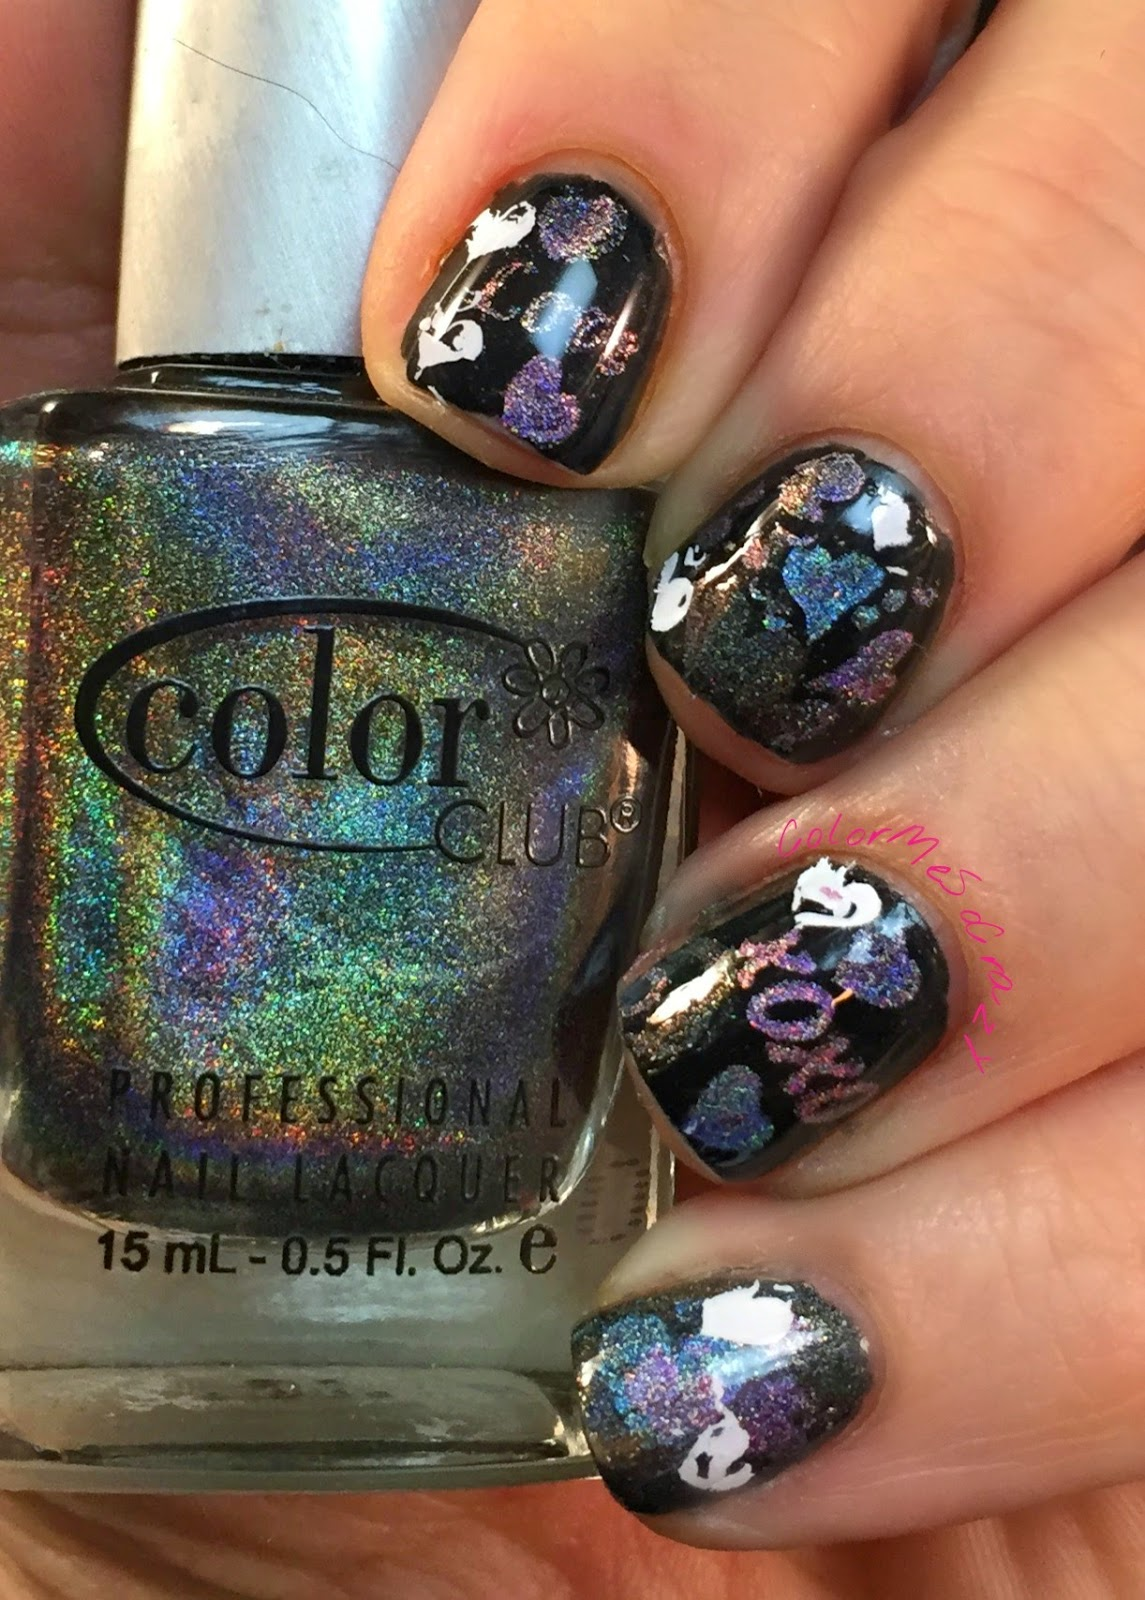 holo, color club holo, just rica, stamping, 52 week challenge, film nails